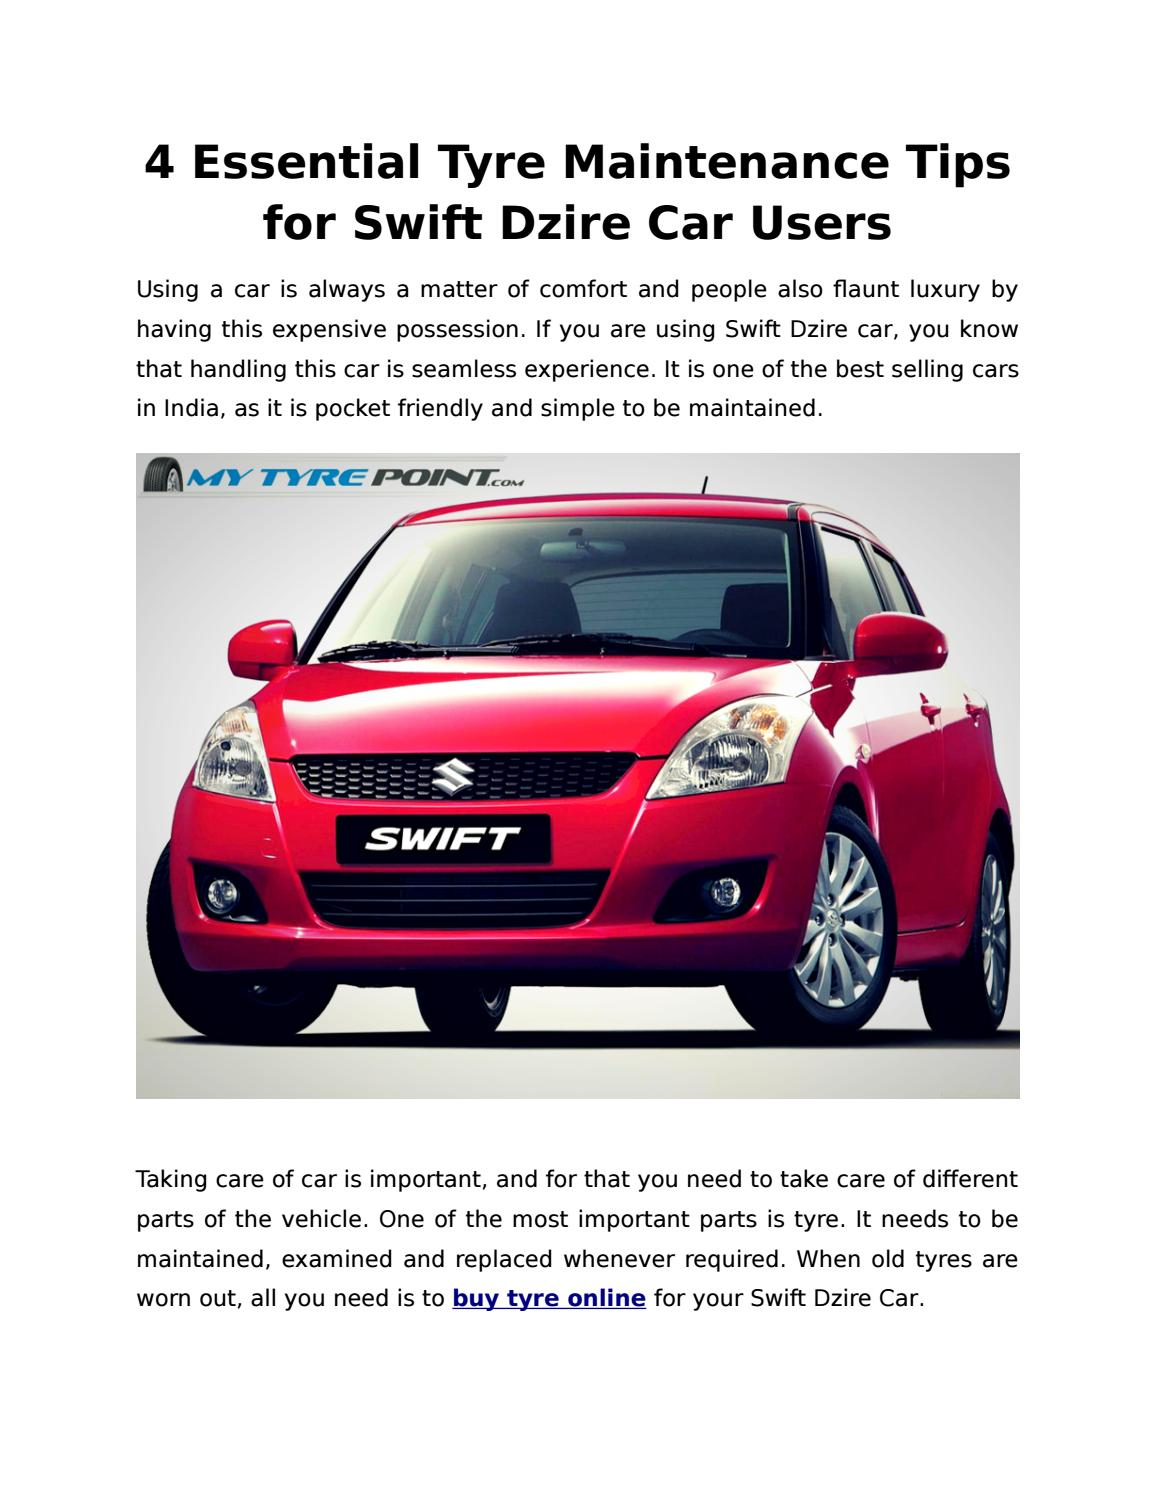 4 Essential Tyre Maintenance Tips For Swift Dzire Car Users 1 By